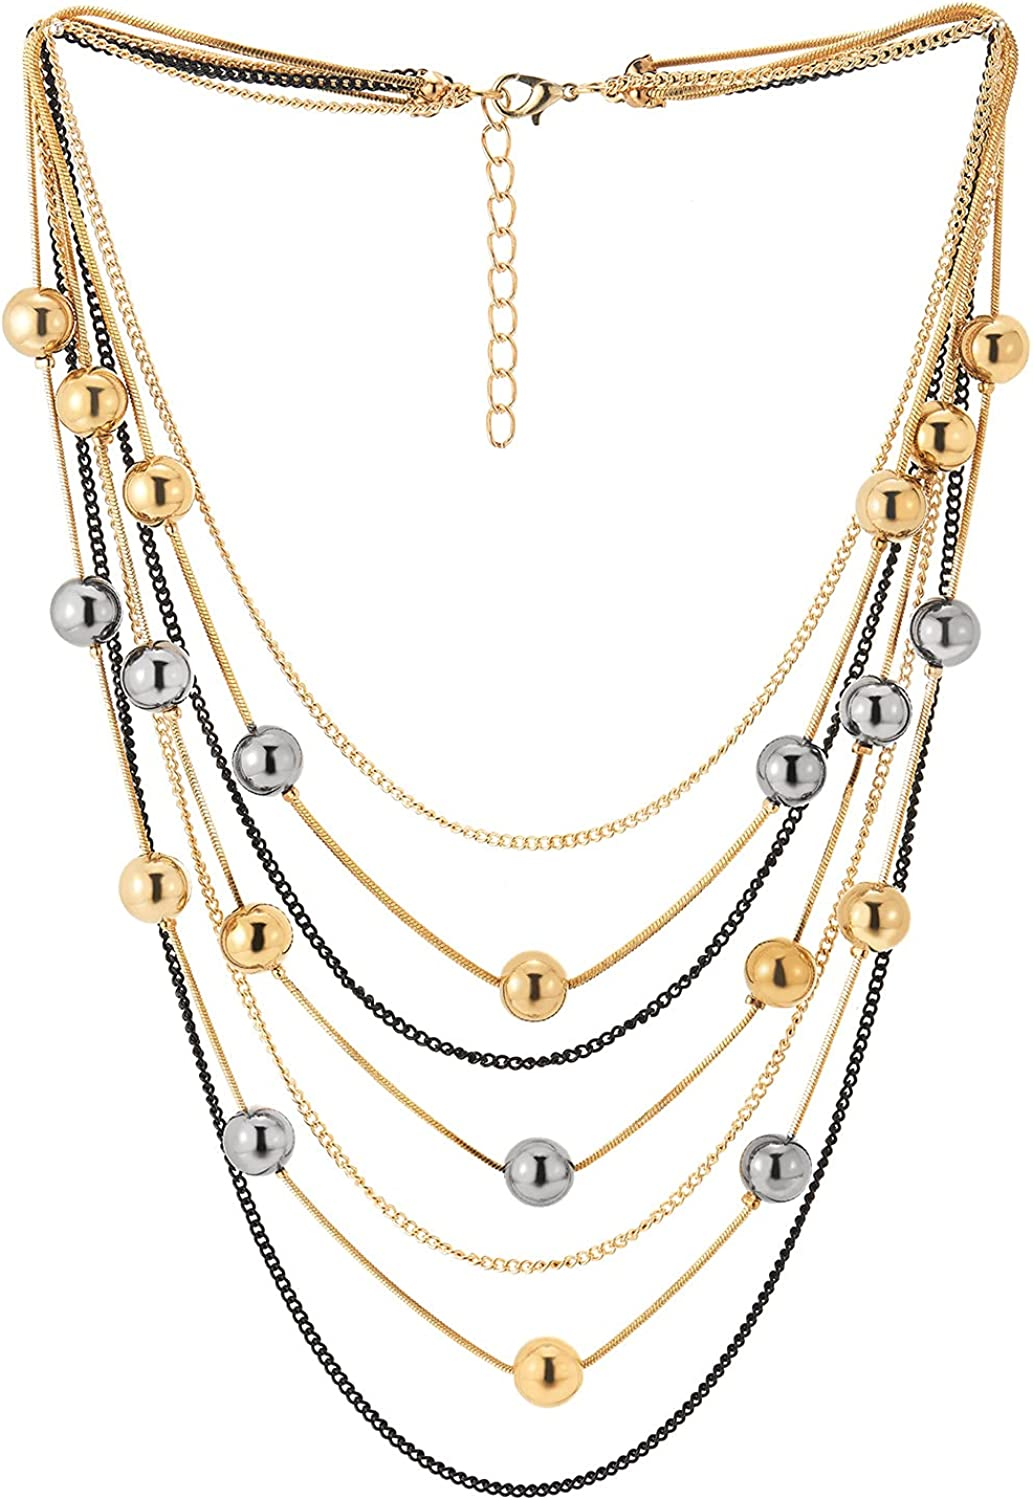 Black Gold Multi-strand Chains Waterfall Collar Statement Necklace with Champagne Grey Beads Balls